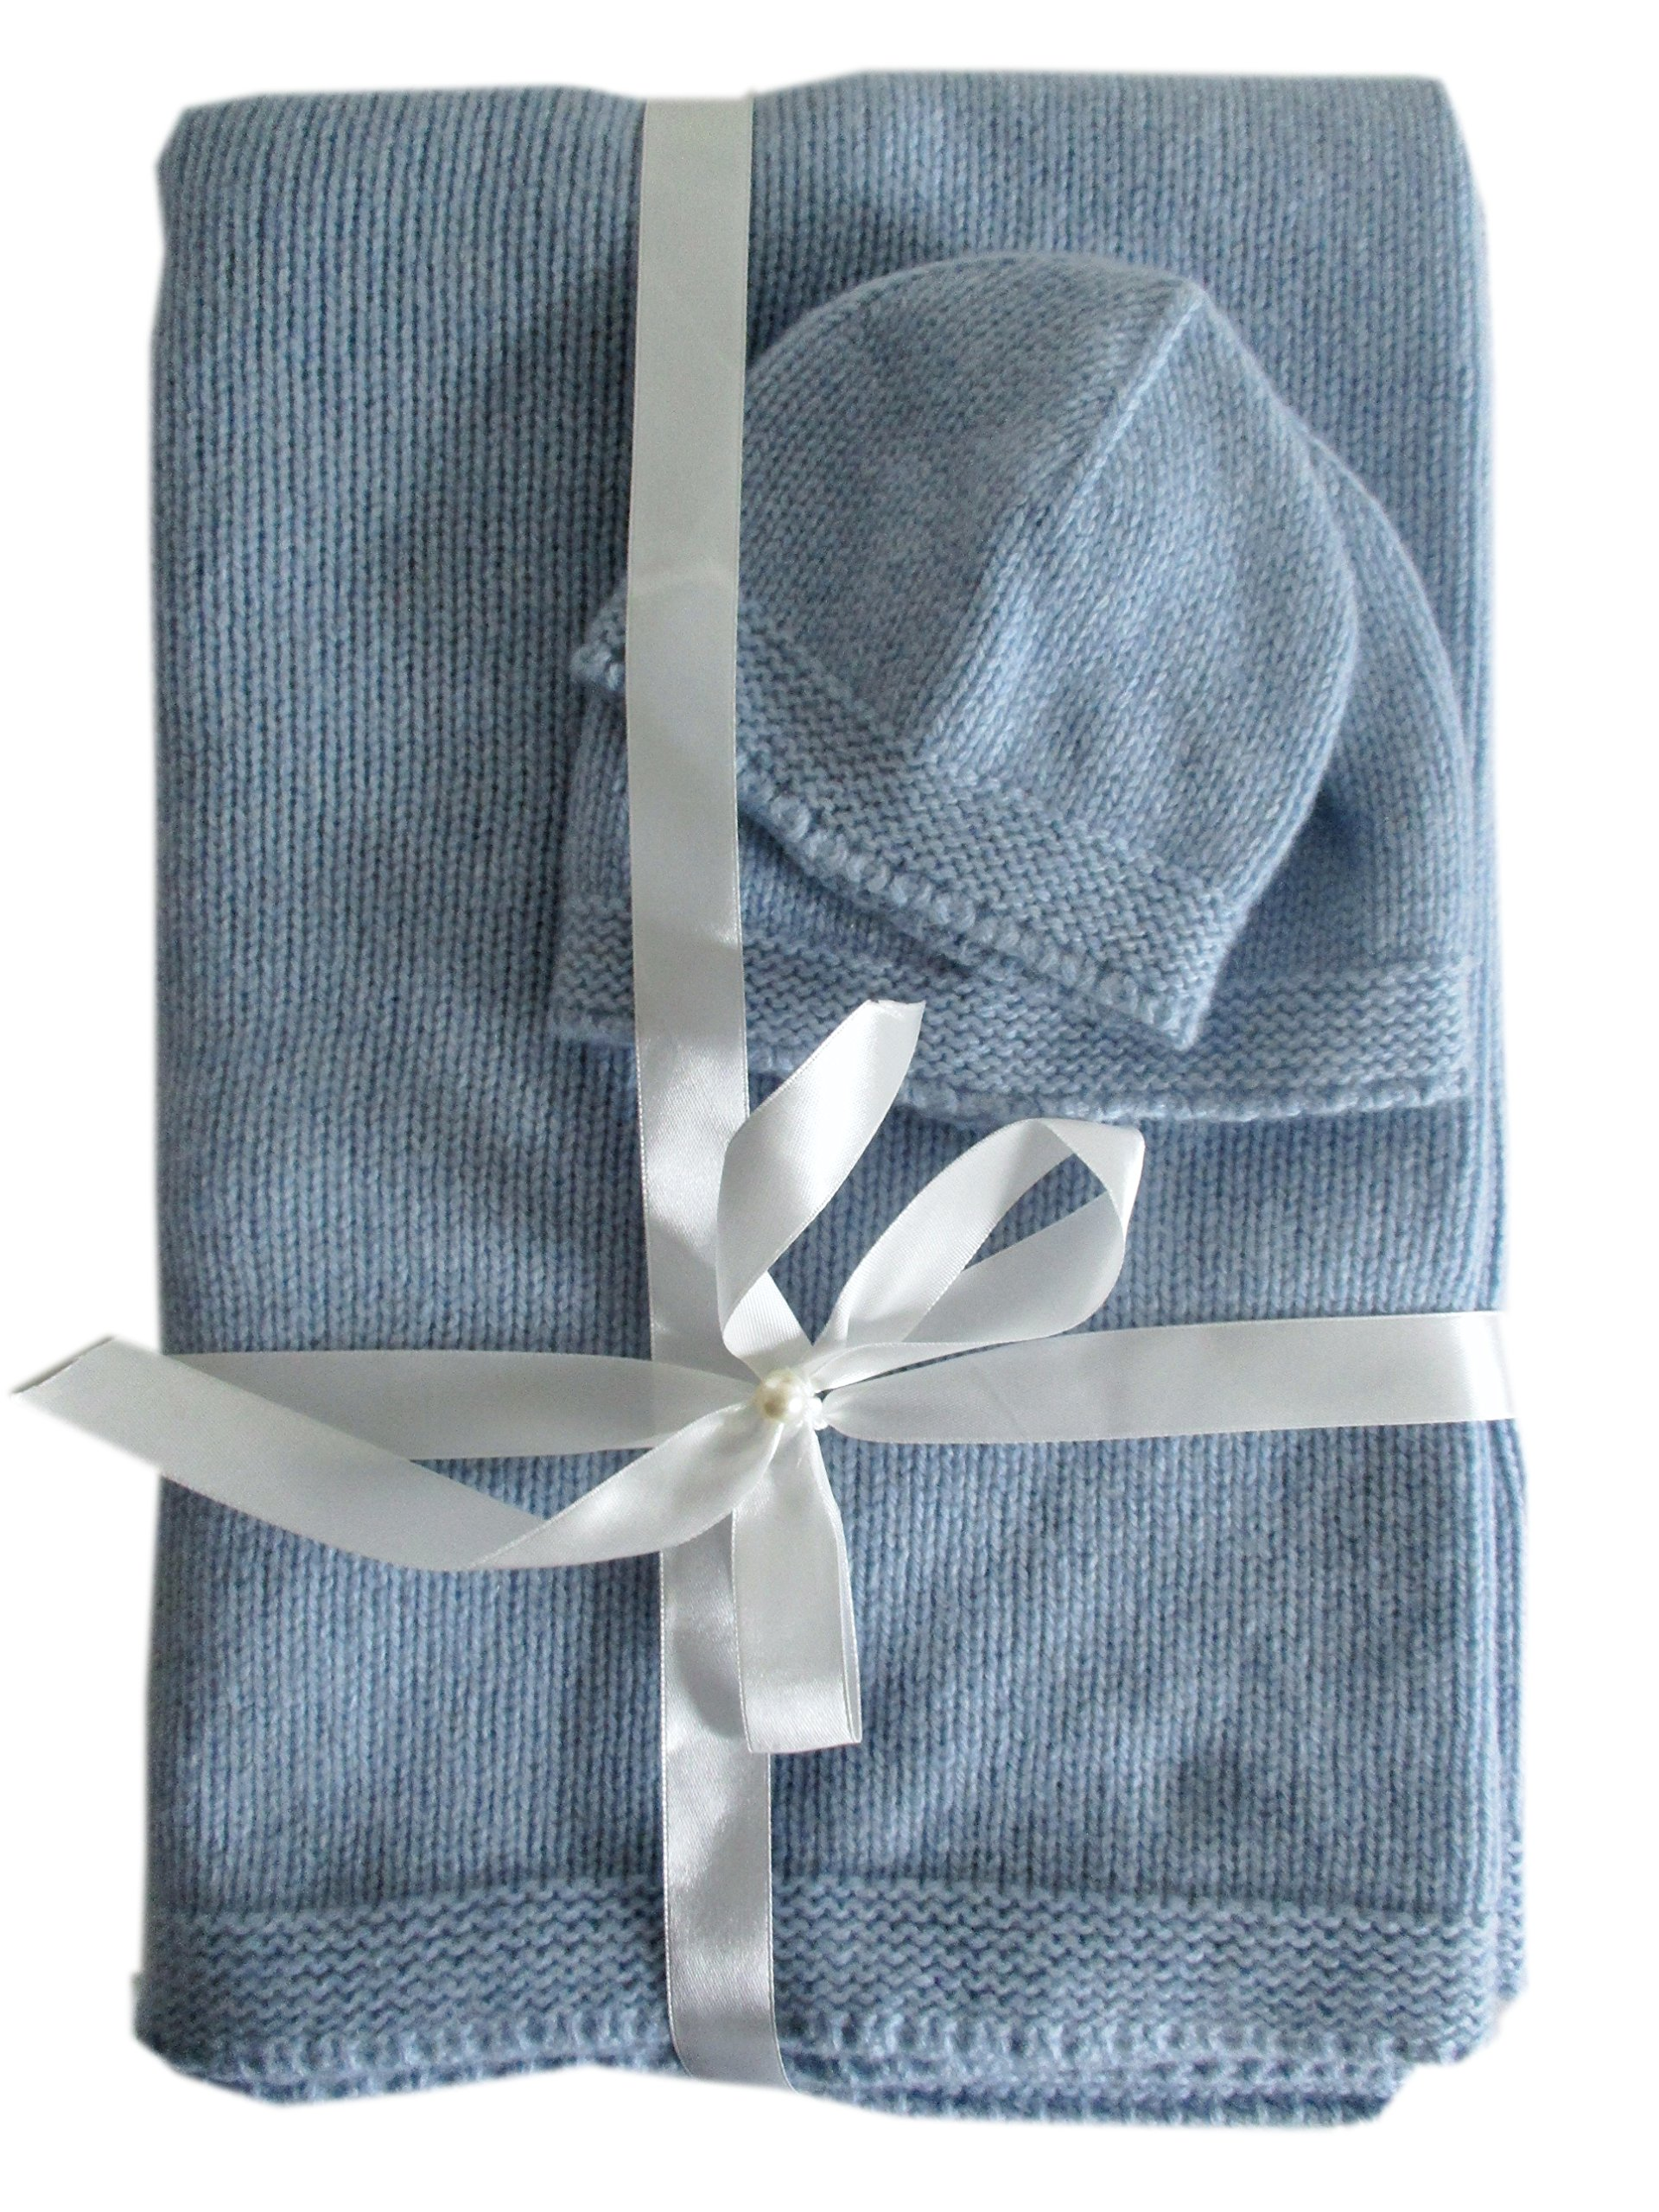 Frost Hats Cashmere Baby Blanket and Hats Set Blue